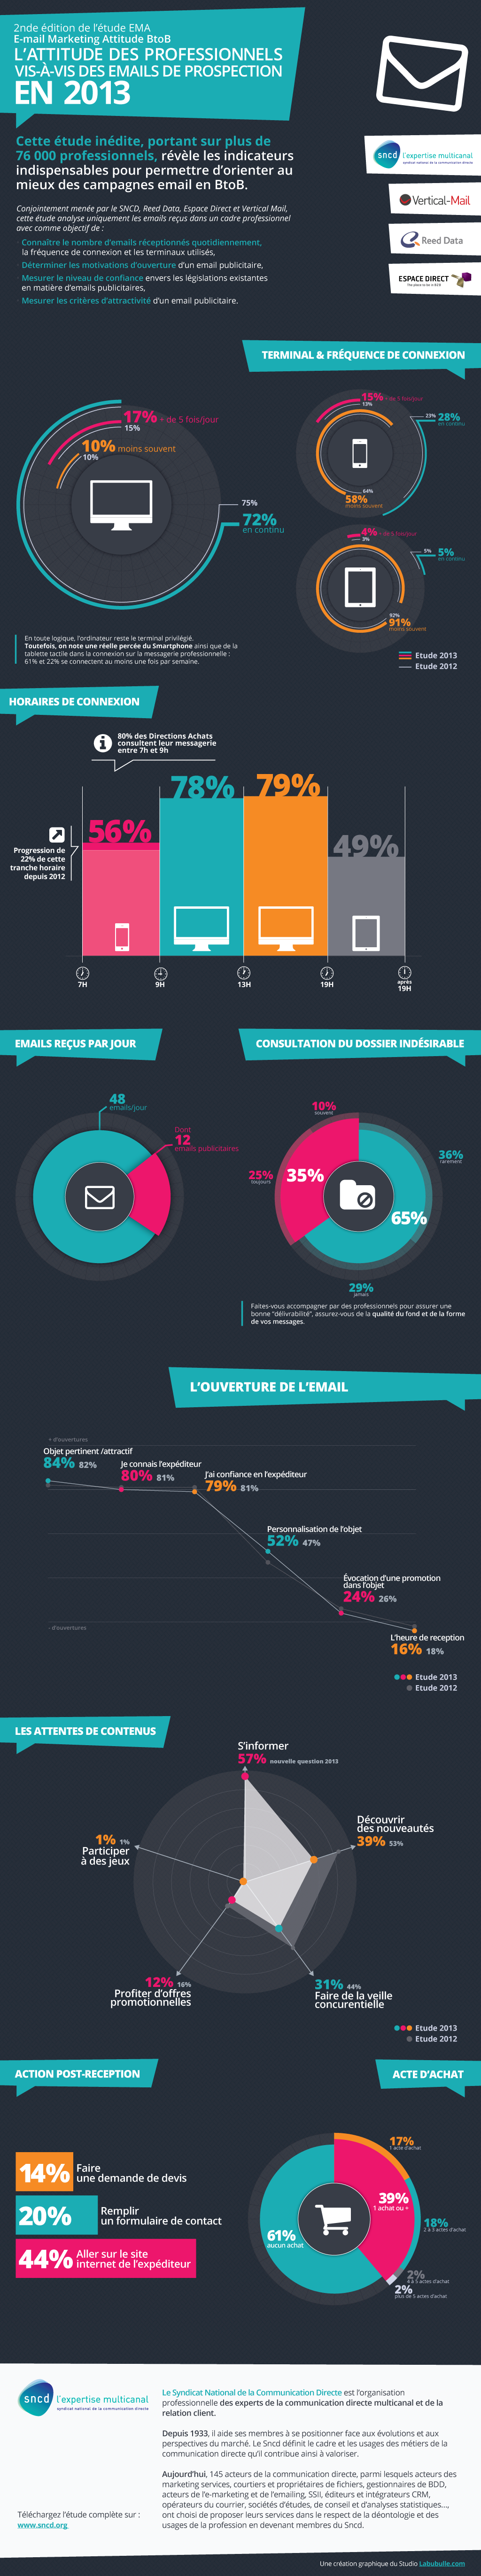 e-mail btoB inbound marketing